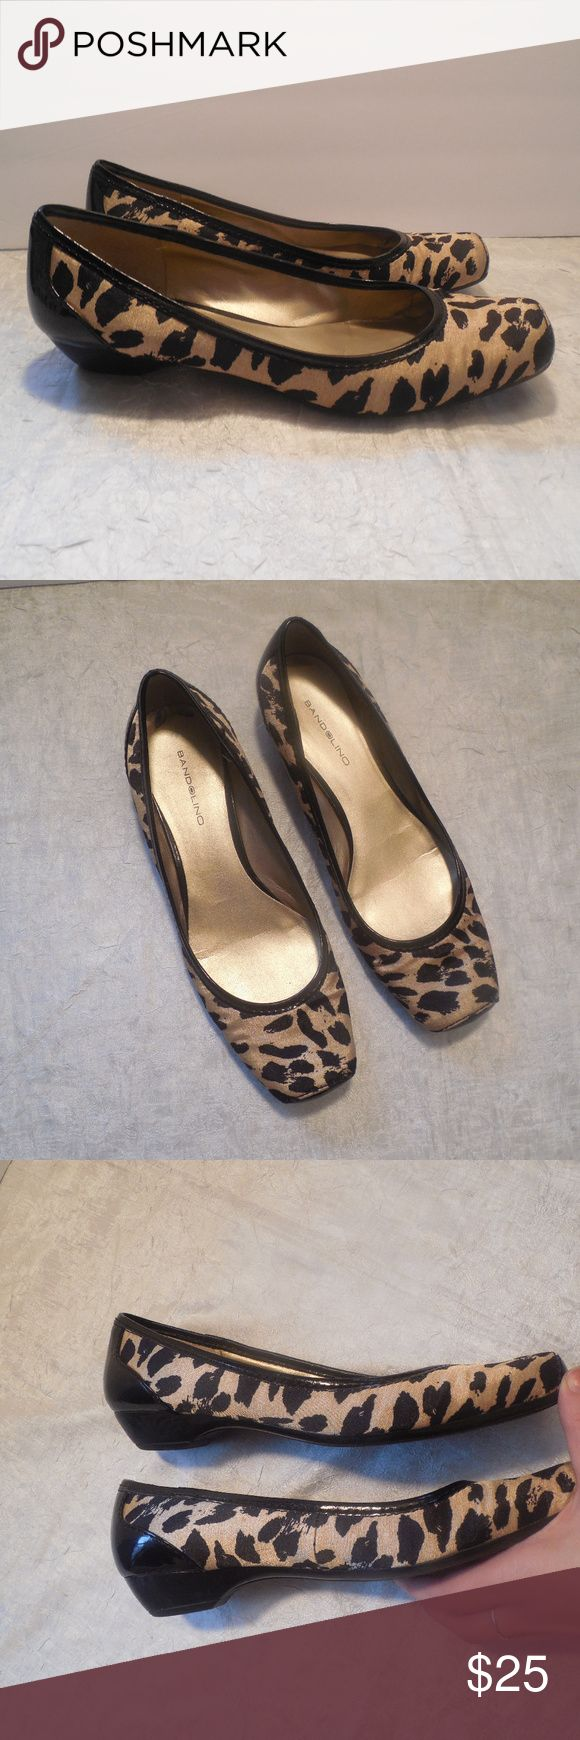 Bandolino Ballet Flats Shoes Square Toe Leopard Bandolino satin animal print ballet flats in size 7.5. Bandolino Shoes Flats & Loafers